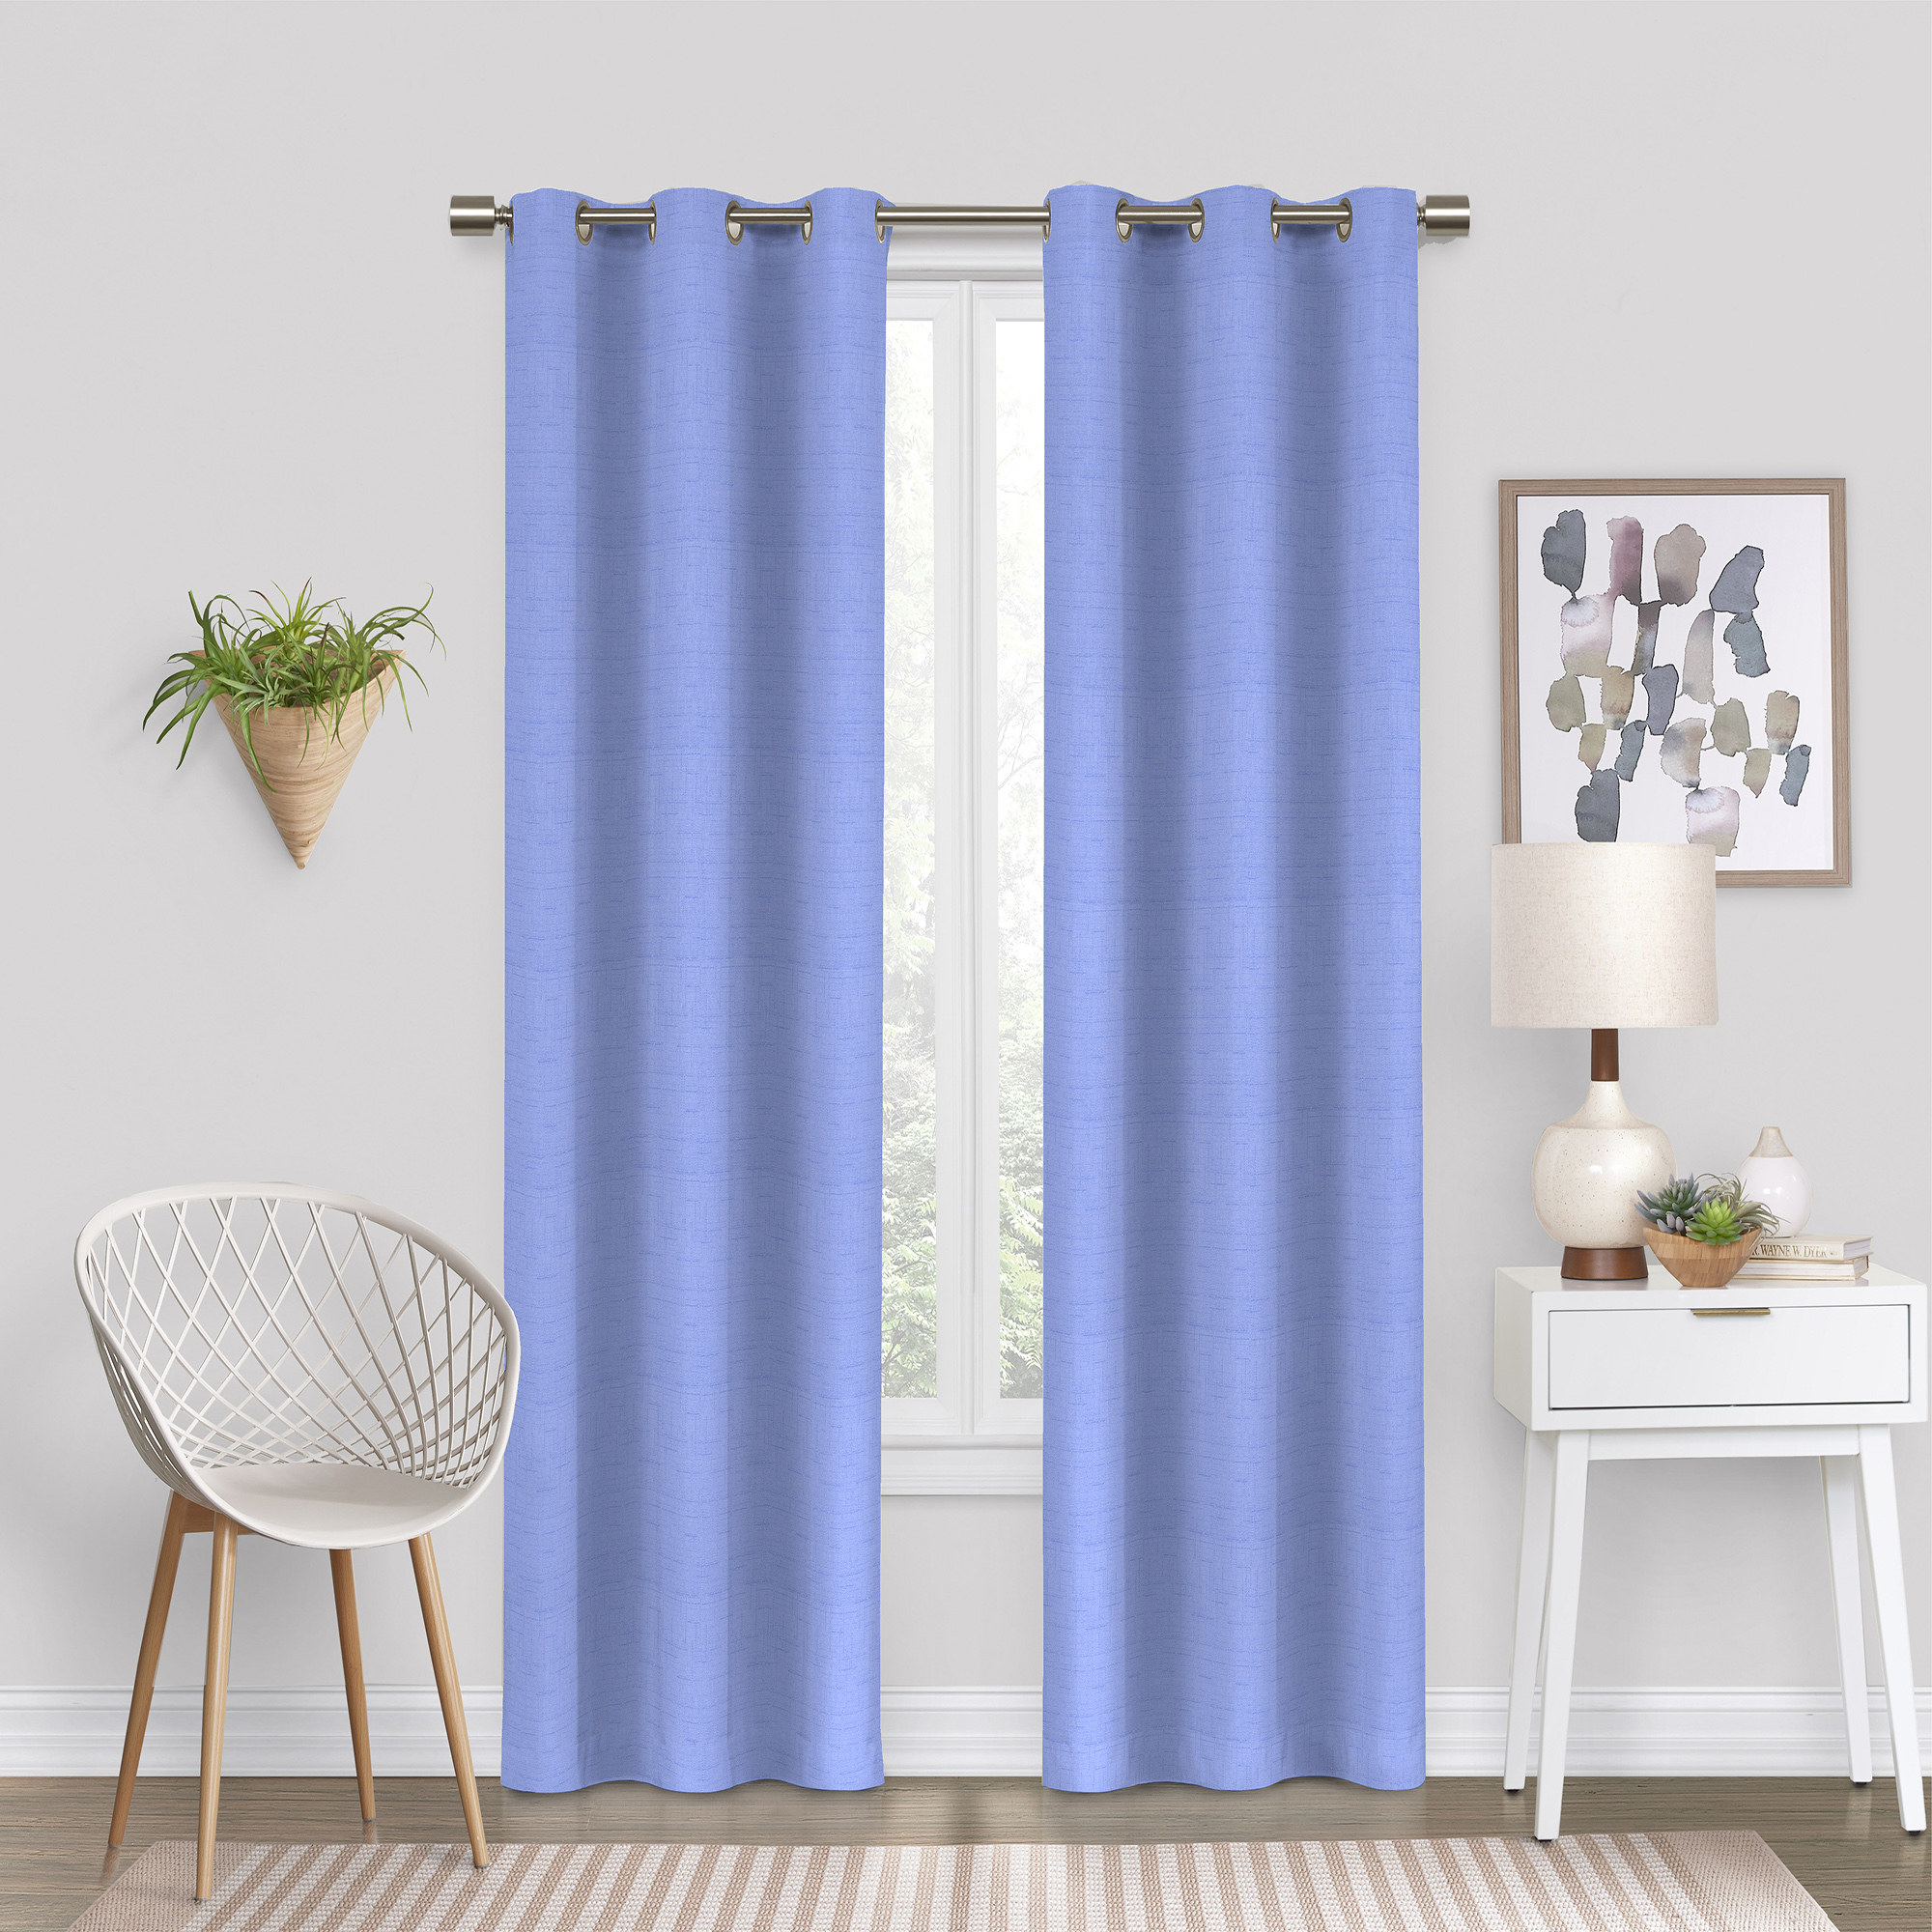 The curtains, which hang to the floor, in periwinkle